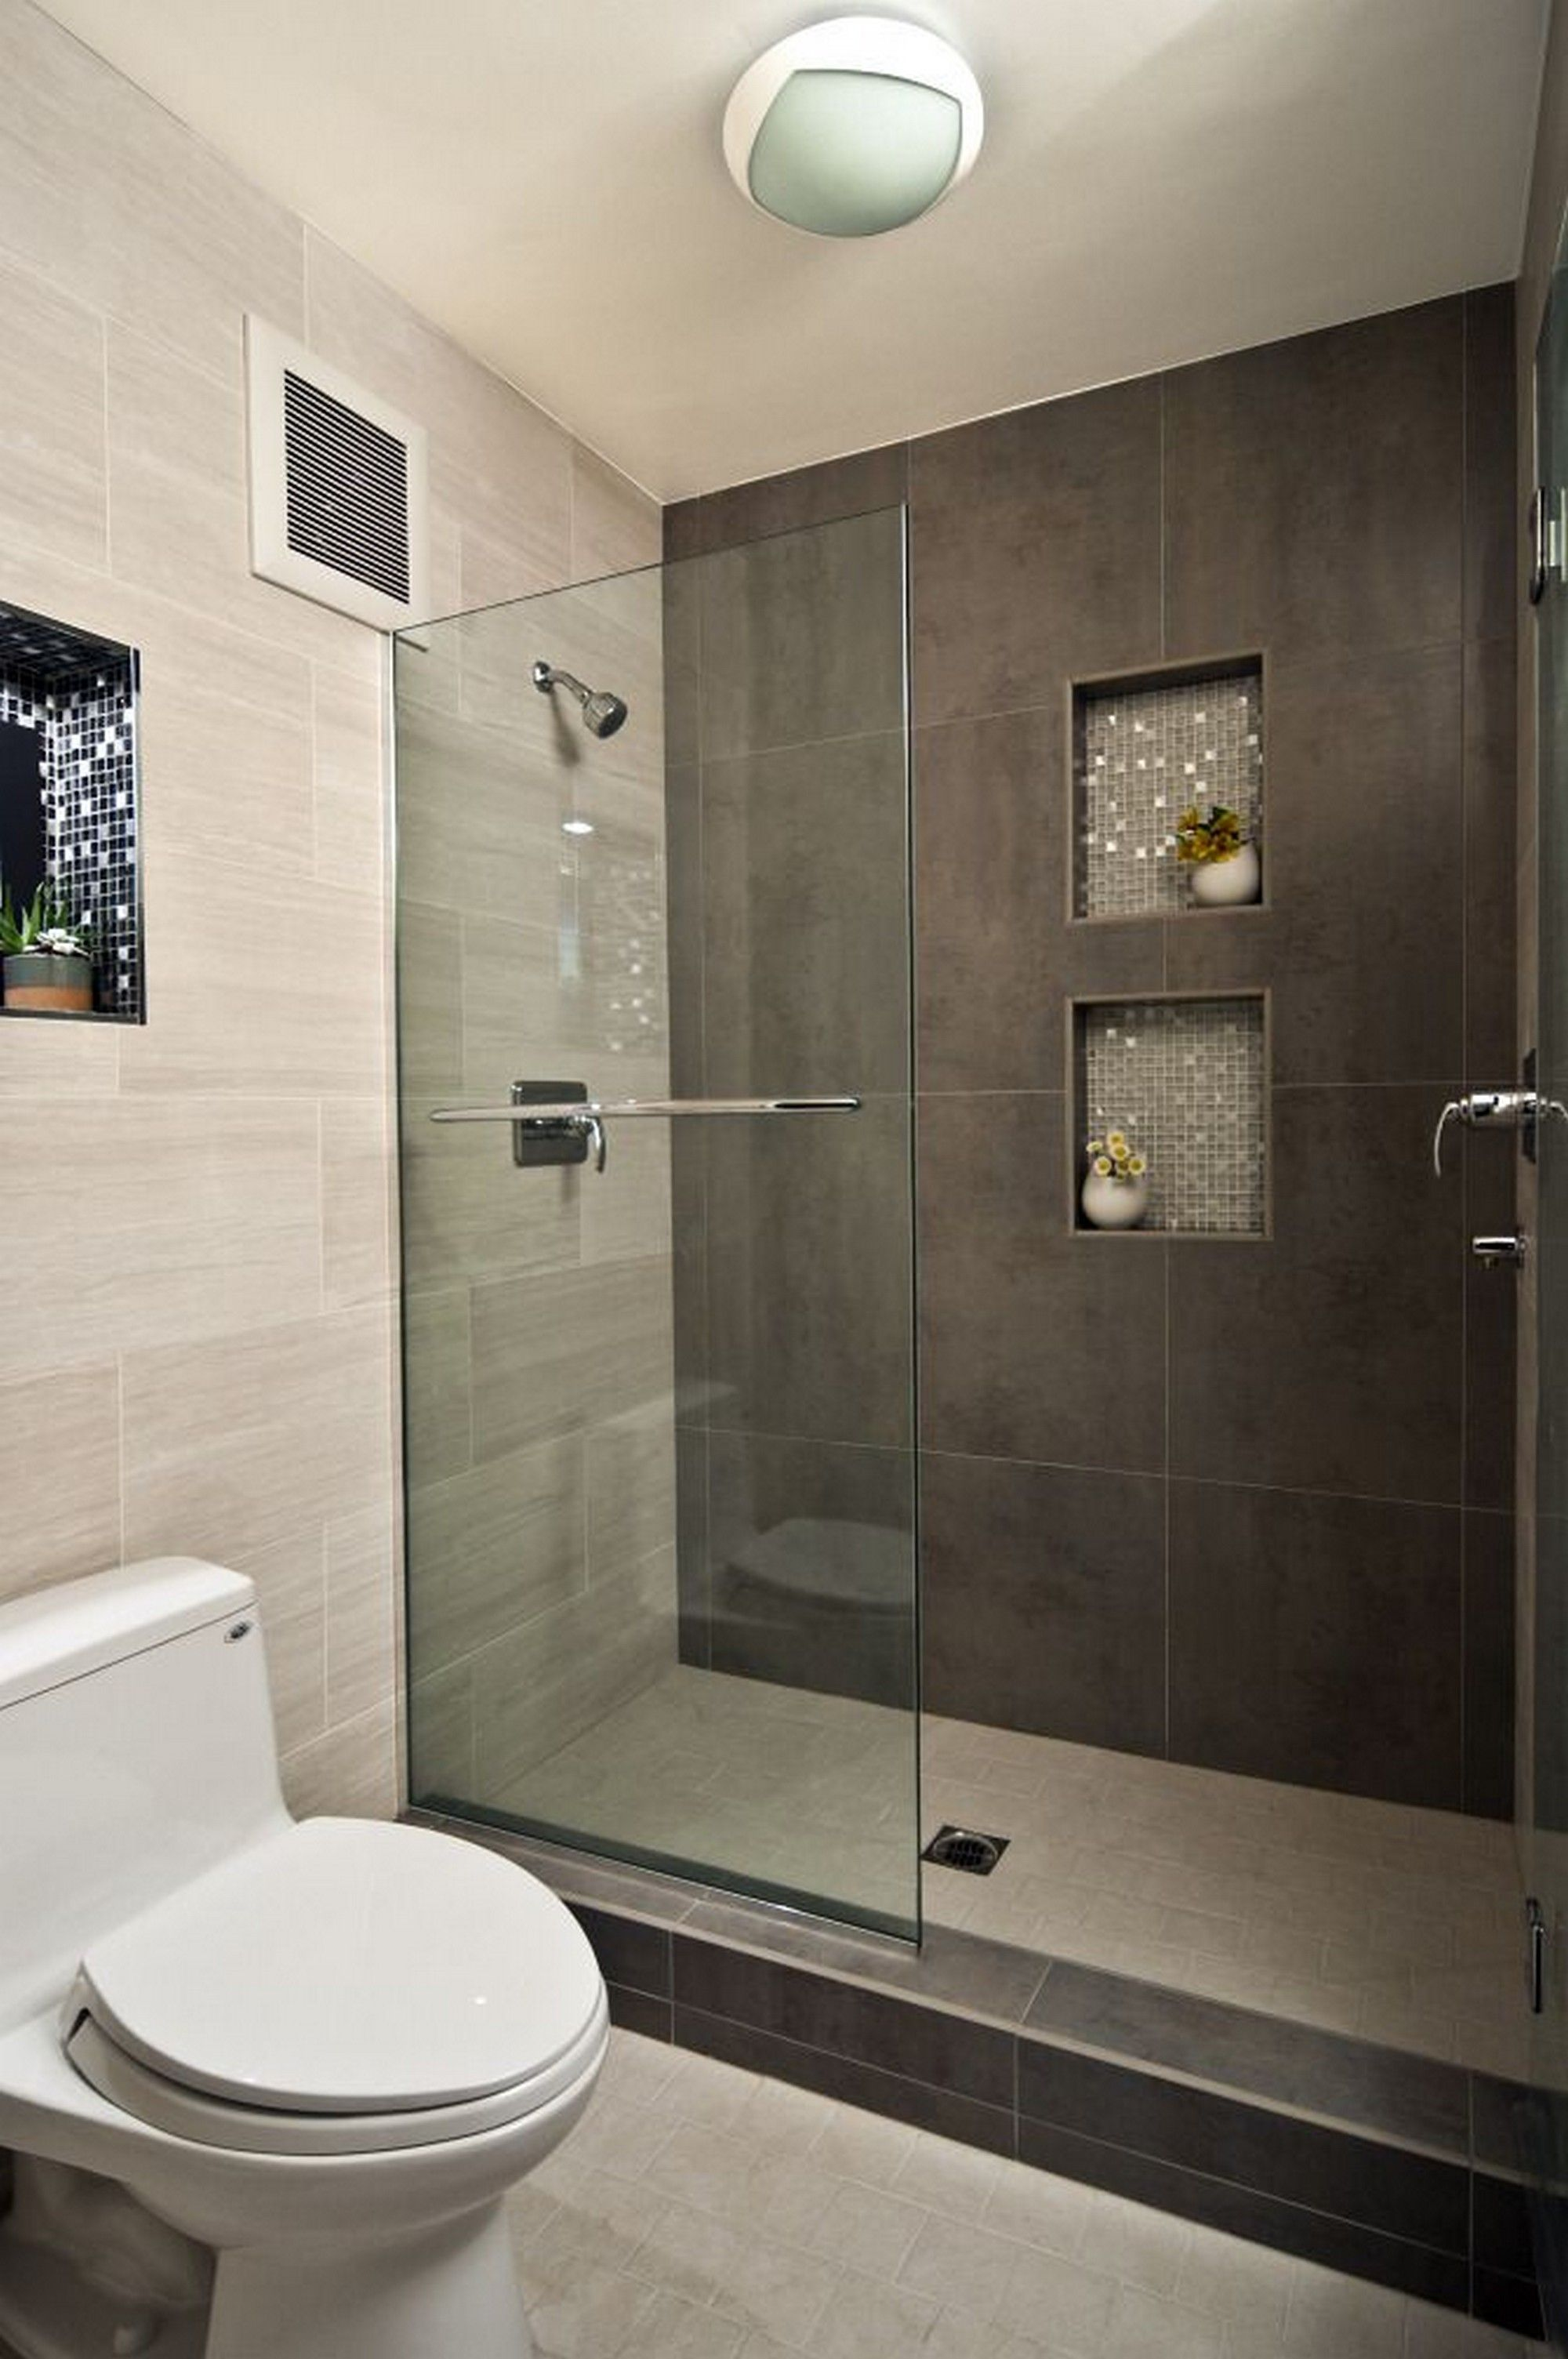 Modern bathroom shower designs - Modern Bathroom Design Ideas With Walk In Shower